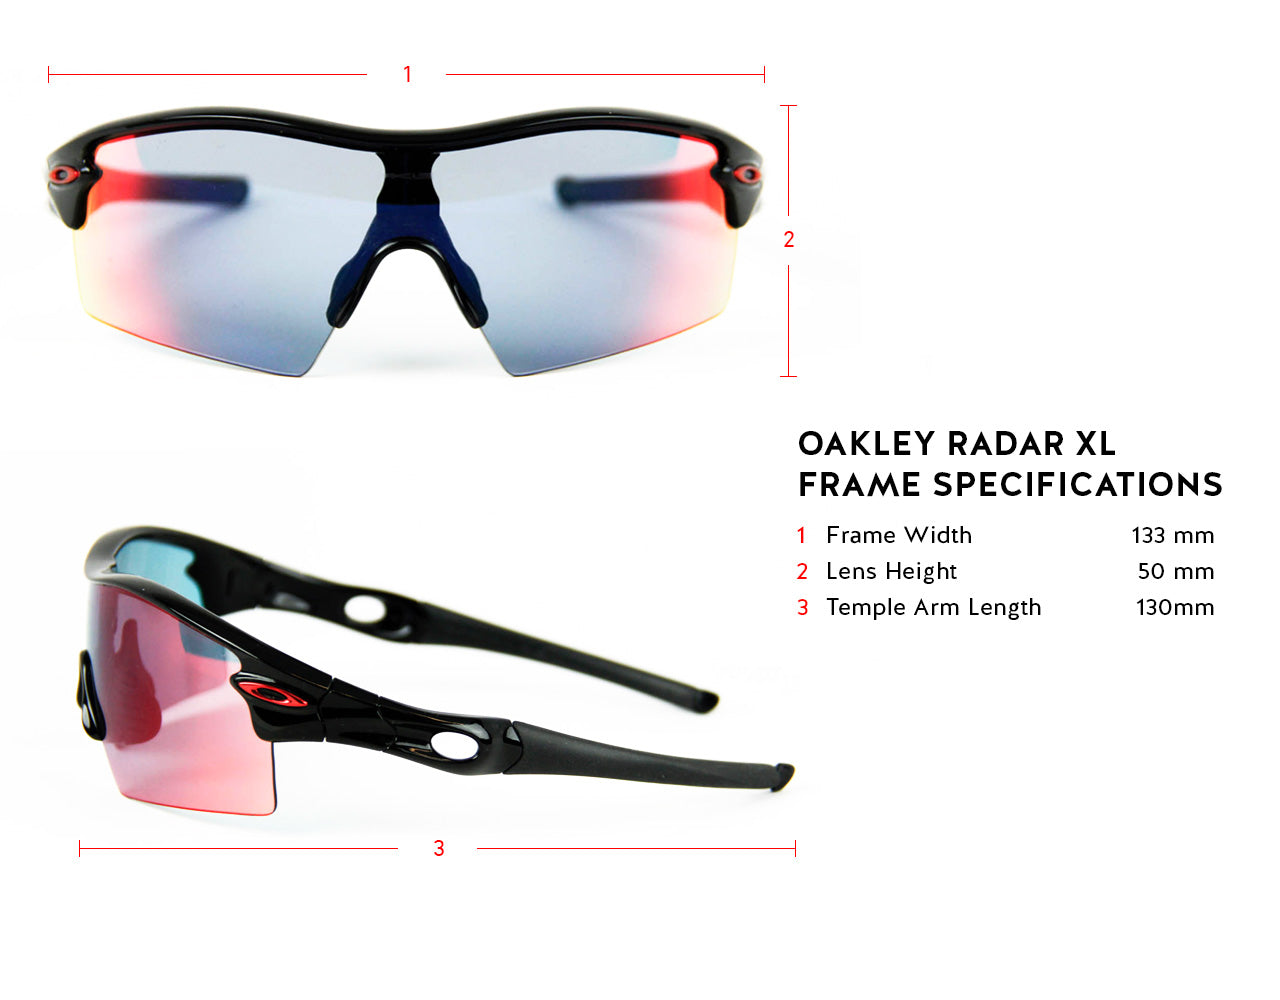 Oakley Radar XL Frame Specifications